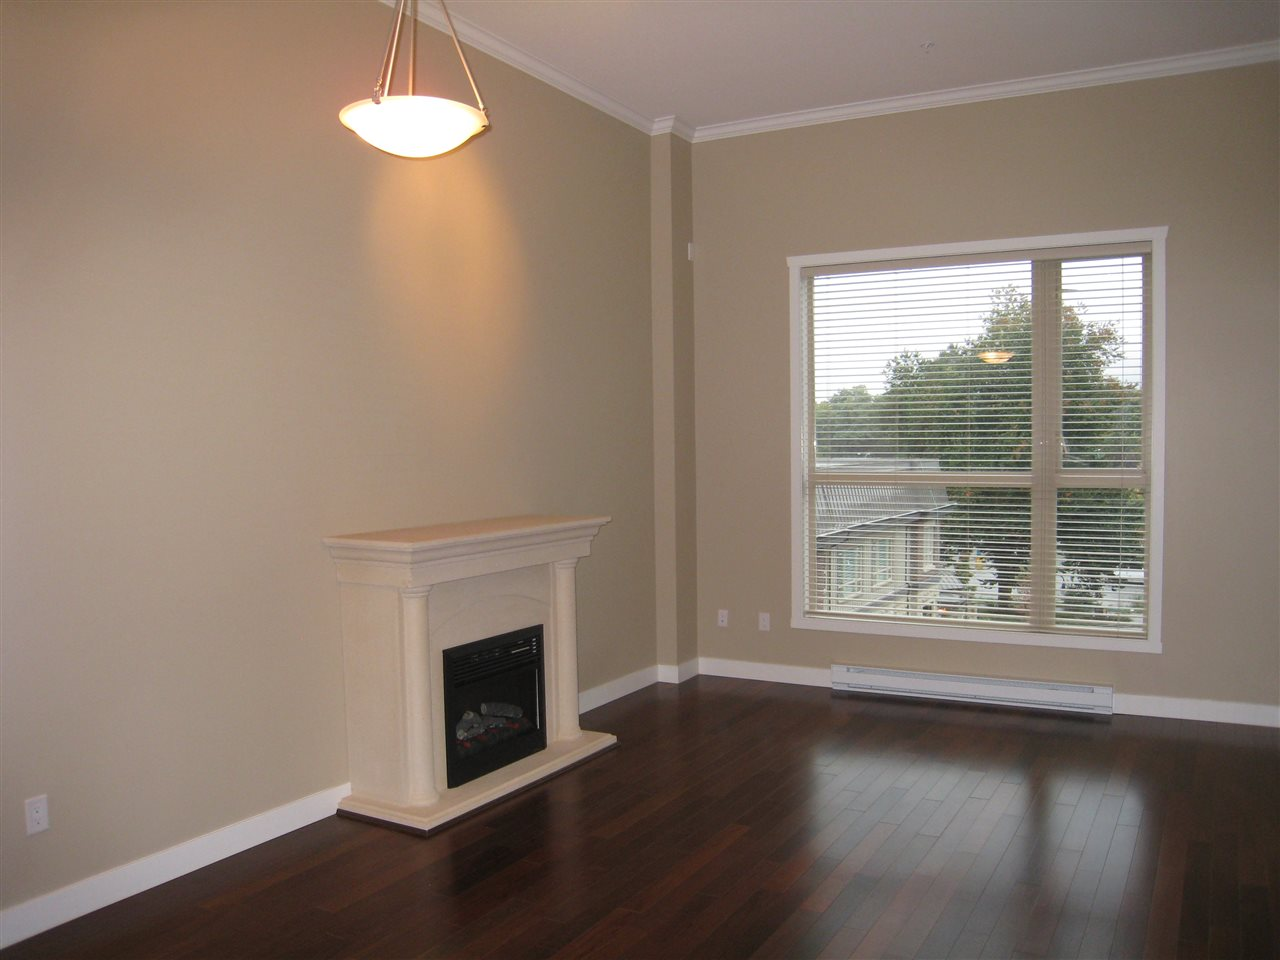 Photo 4: 415 2627 SHAUGHNESSY Street in Port Coquitlam: Central Pt Coquitlam Condo for sale : MLS® # R2164220